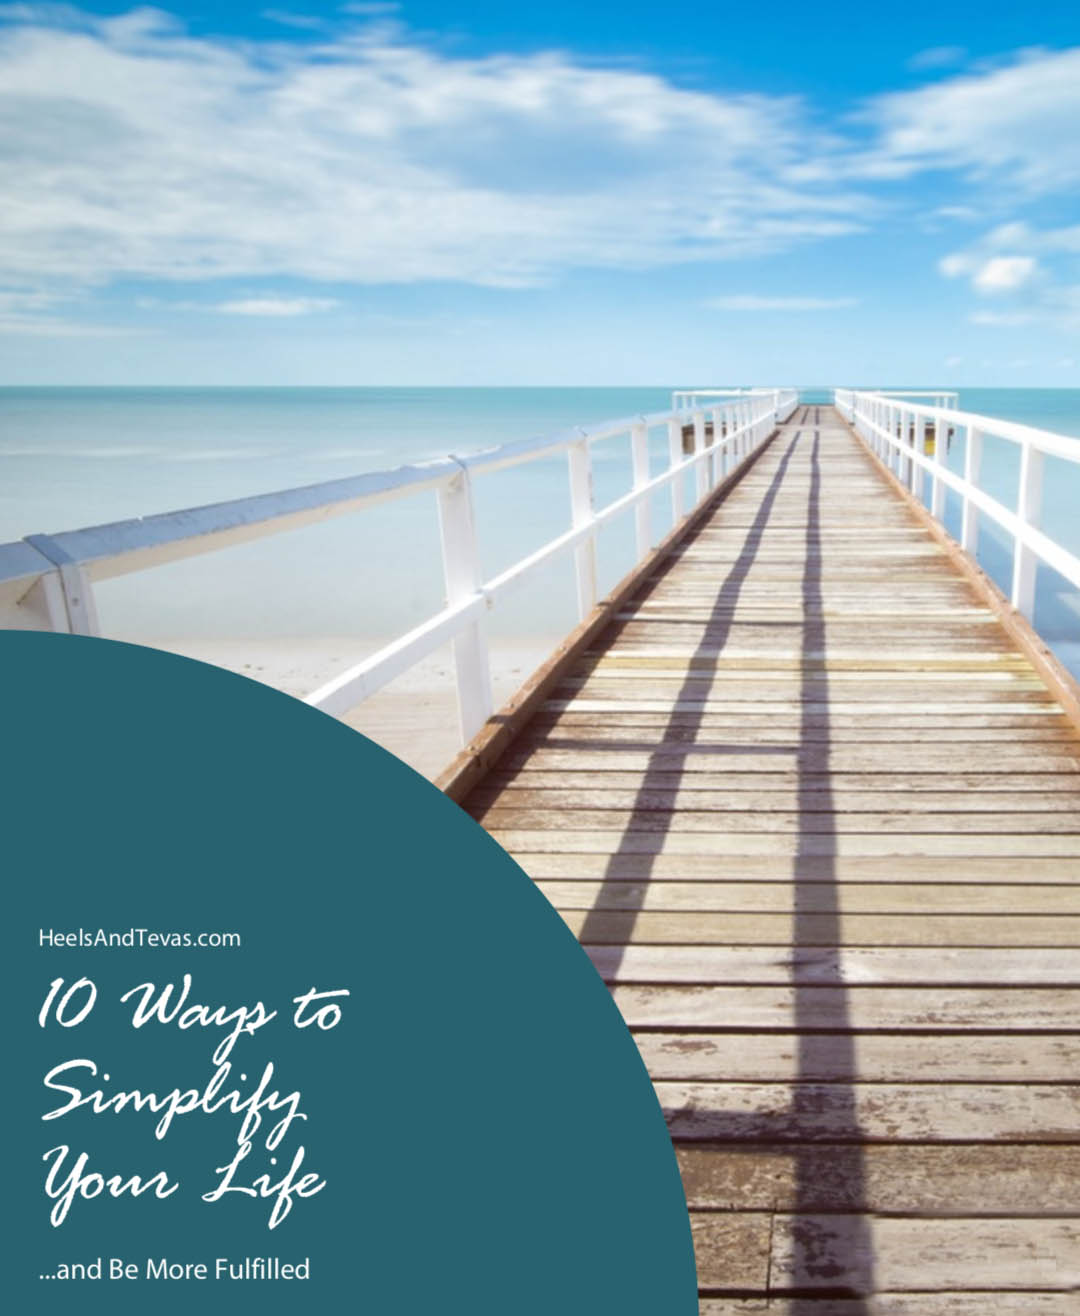 10-Ways to Simplify Your Life download link